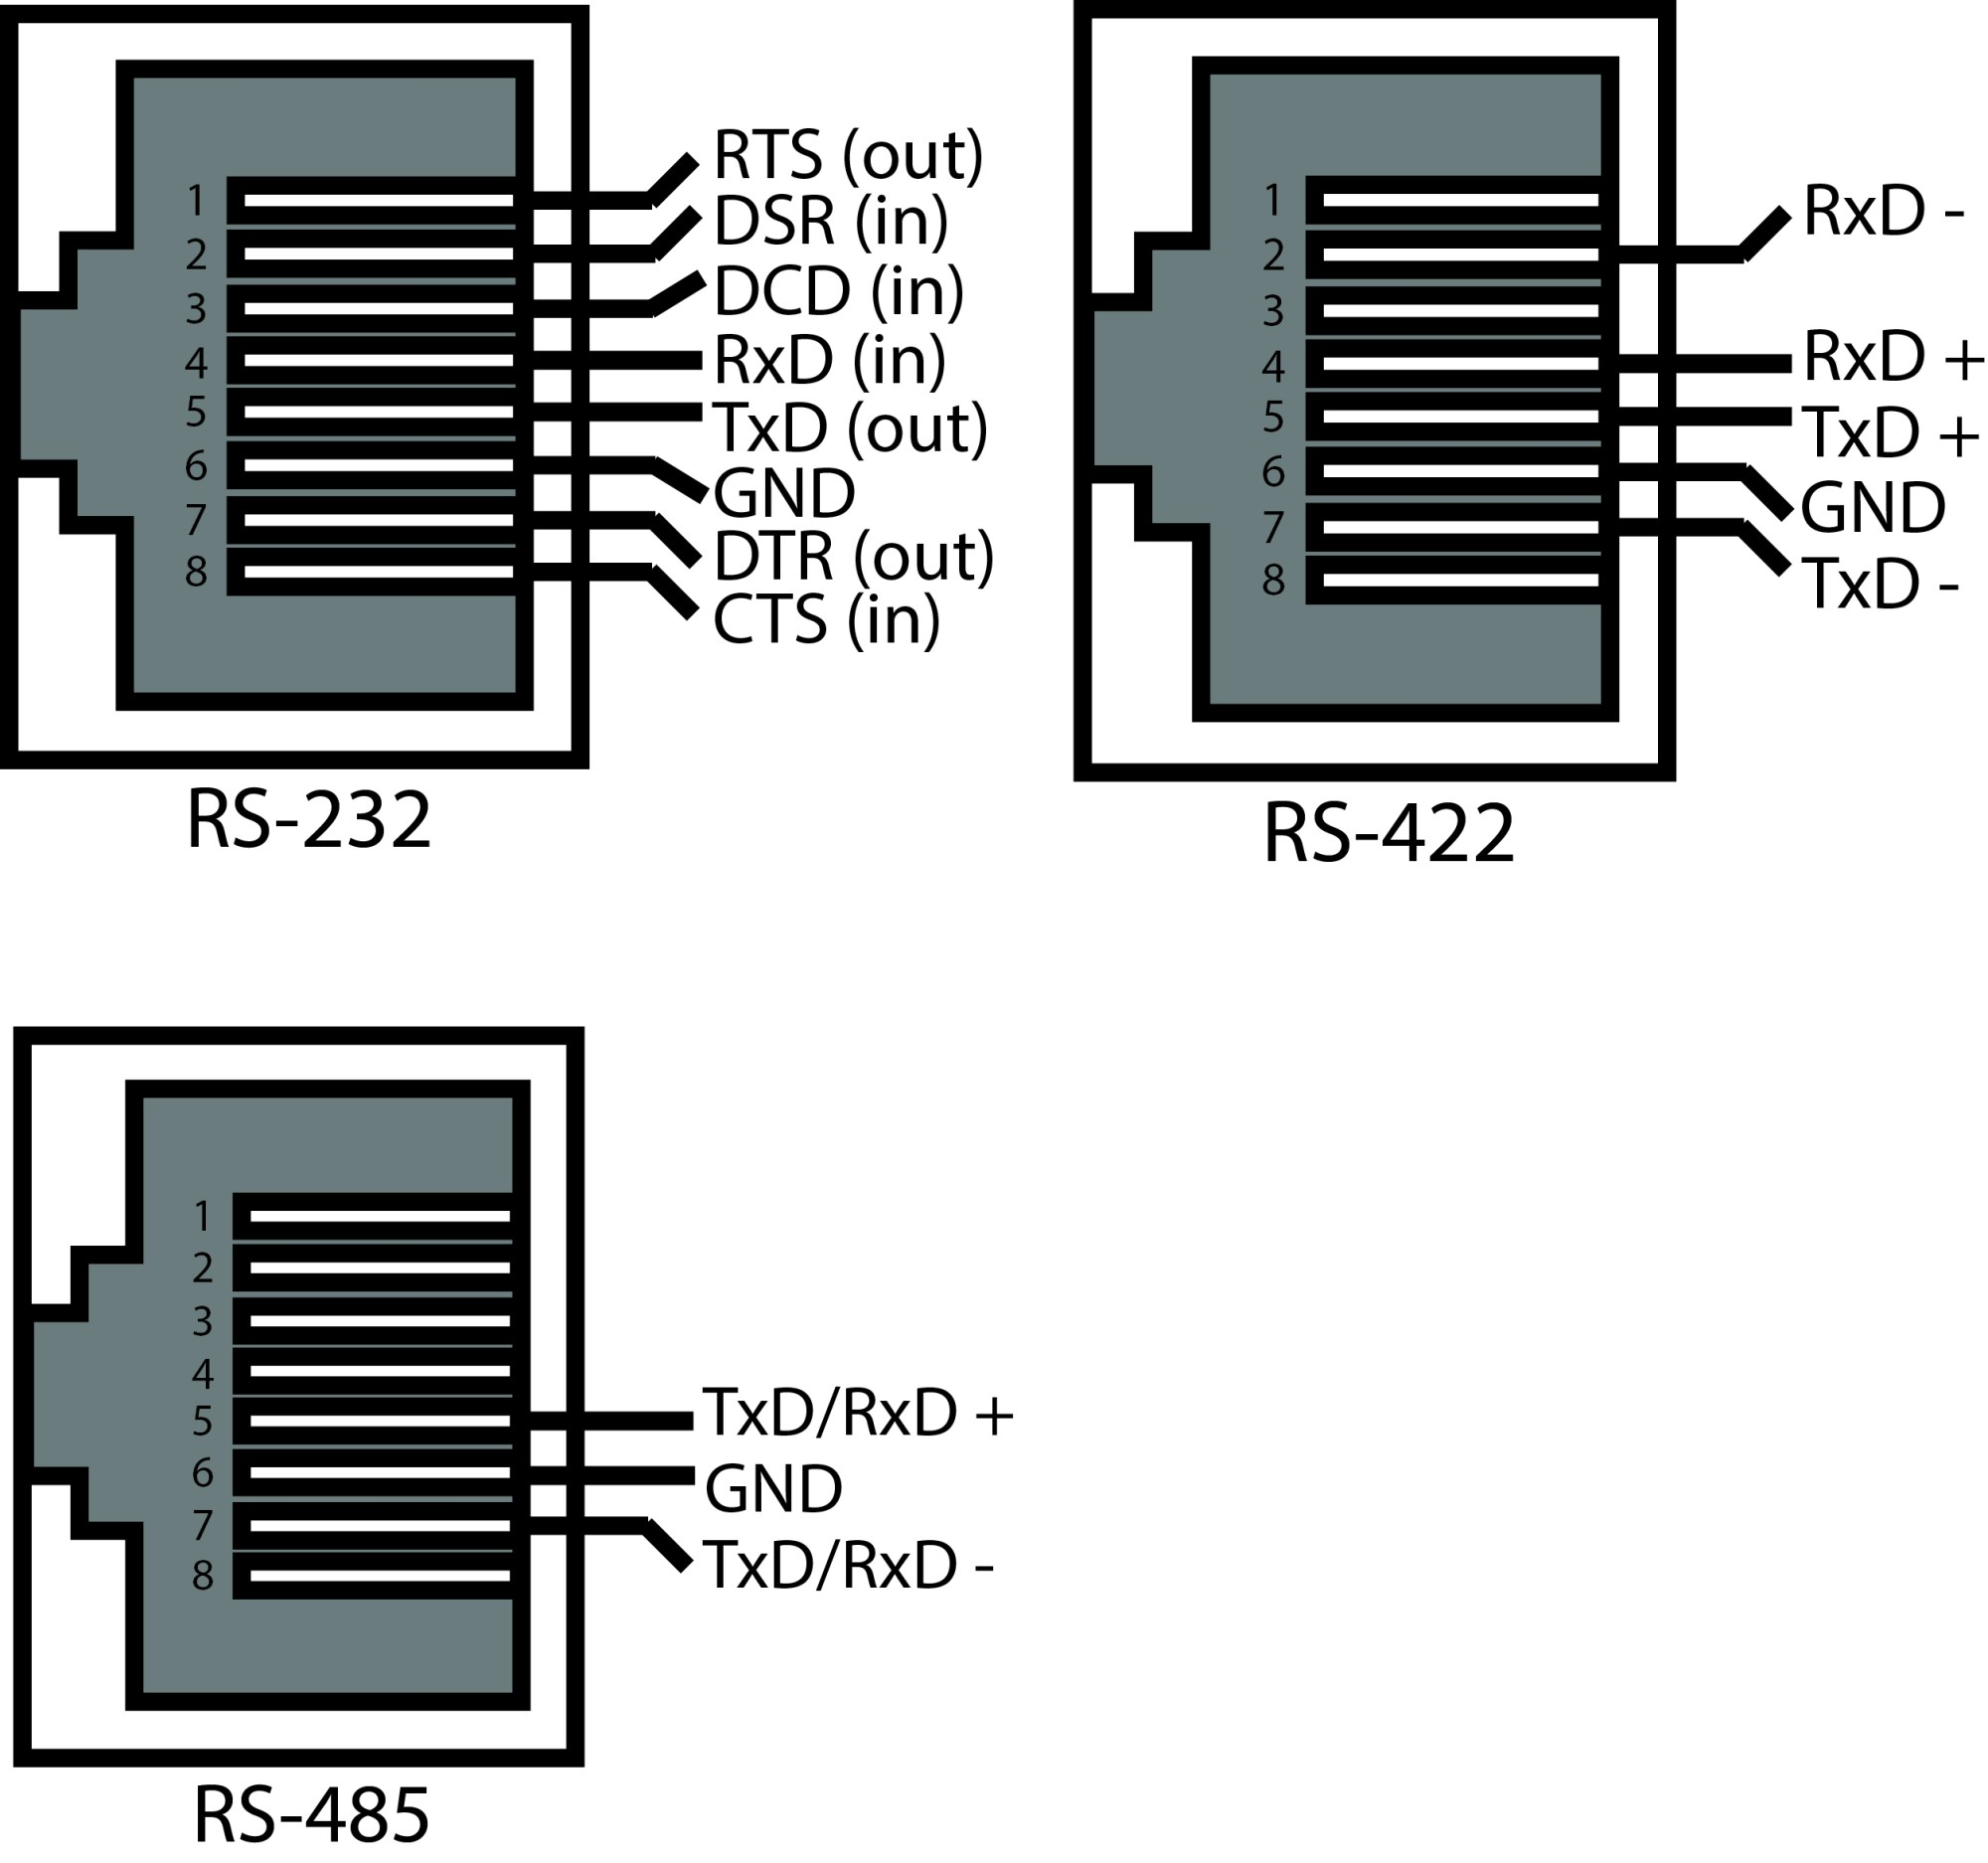 hight resolution of rs 485 rj45 wiring diagram wiring diagrams img 4l60e wiring diagram comtrol 99581 4 express